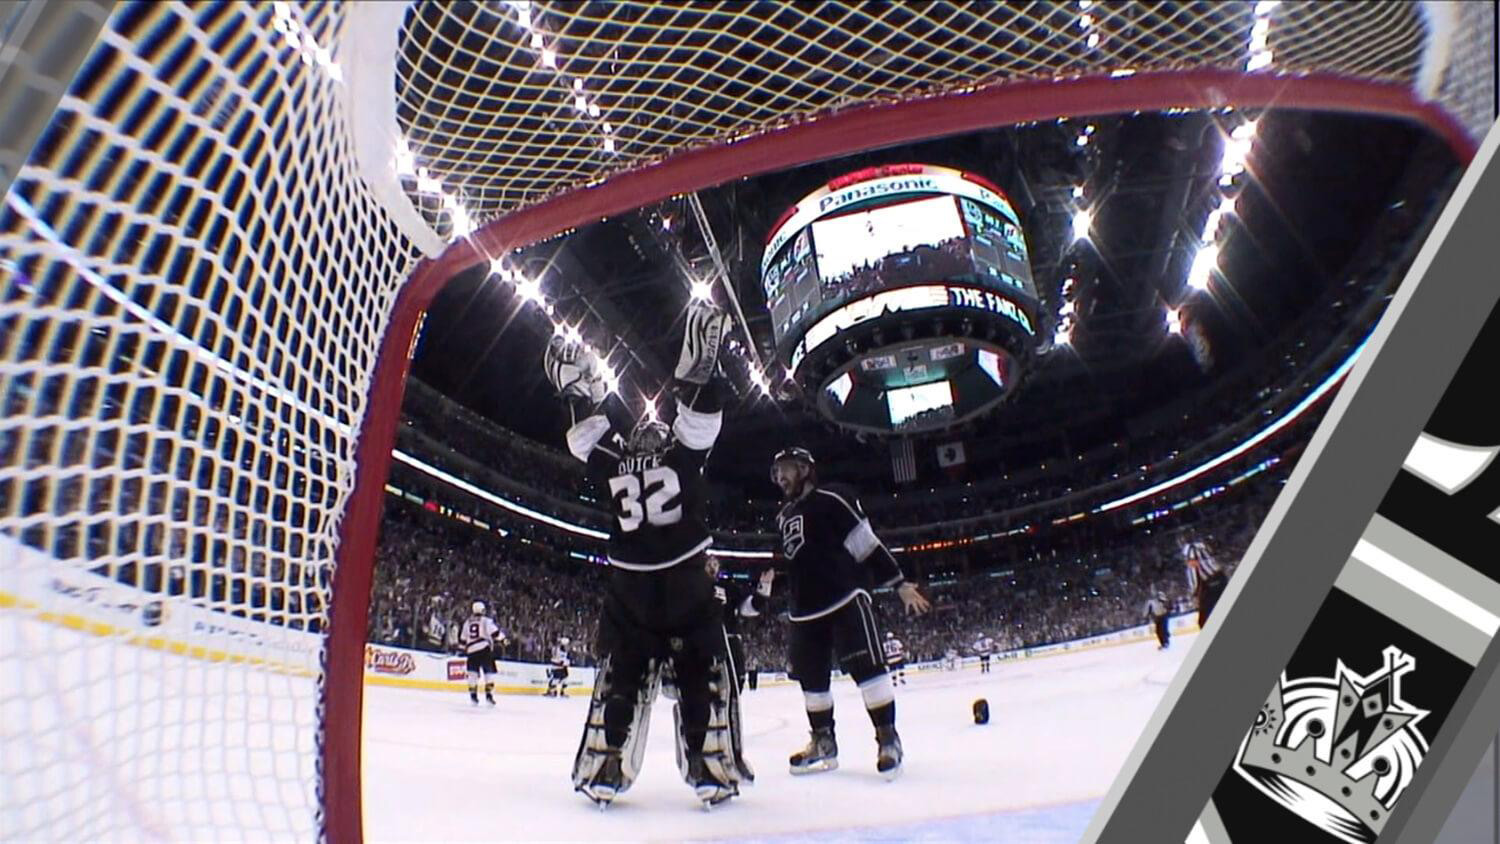 AEG Sports stays focused on customer experience goals, responding to challenges and fan concerns with help from analytics in the cloud from SAS Viya and Microsoft Azure.